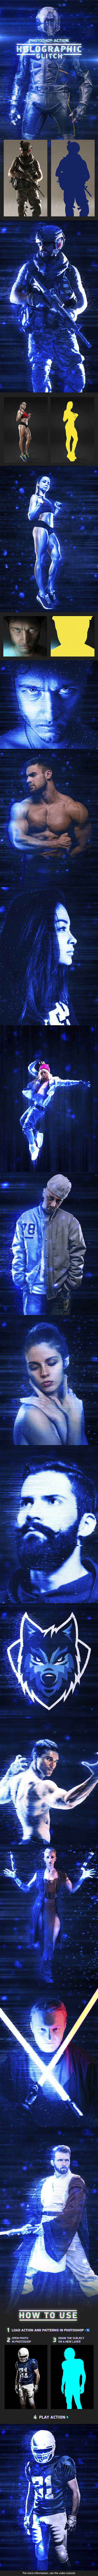 Holographic Glitch Photoshop Action - Photo Effects Actions